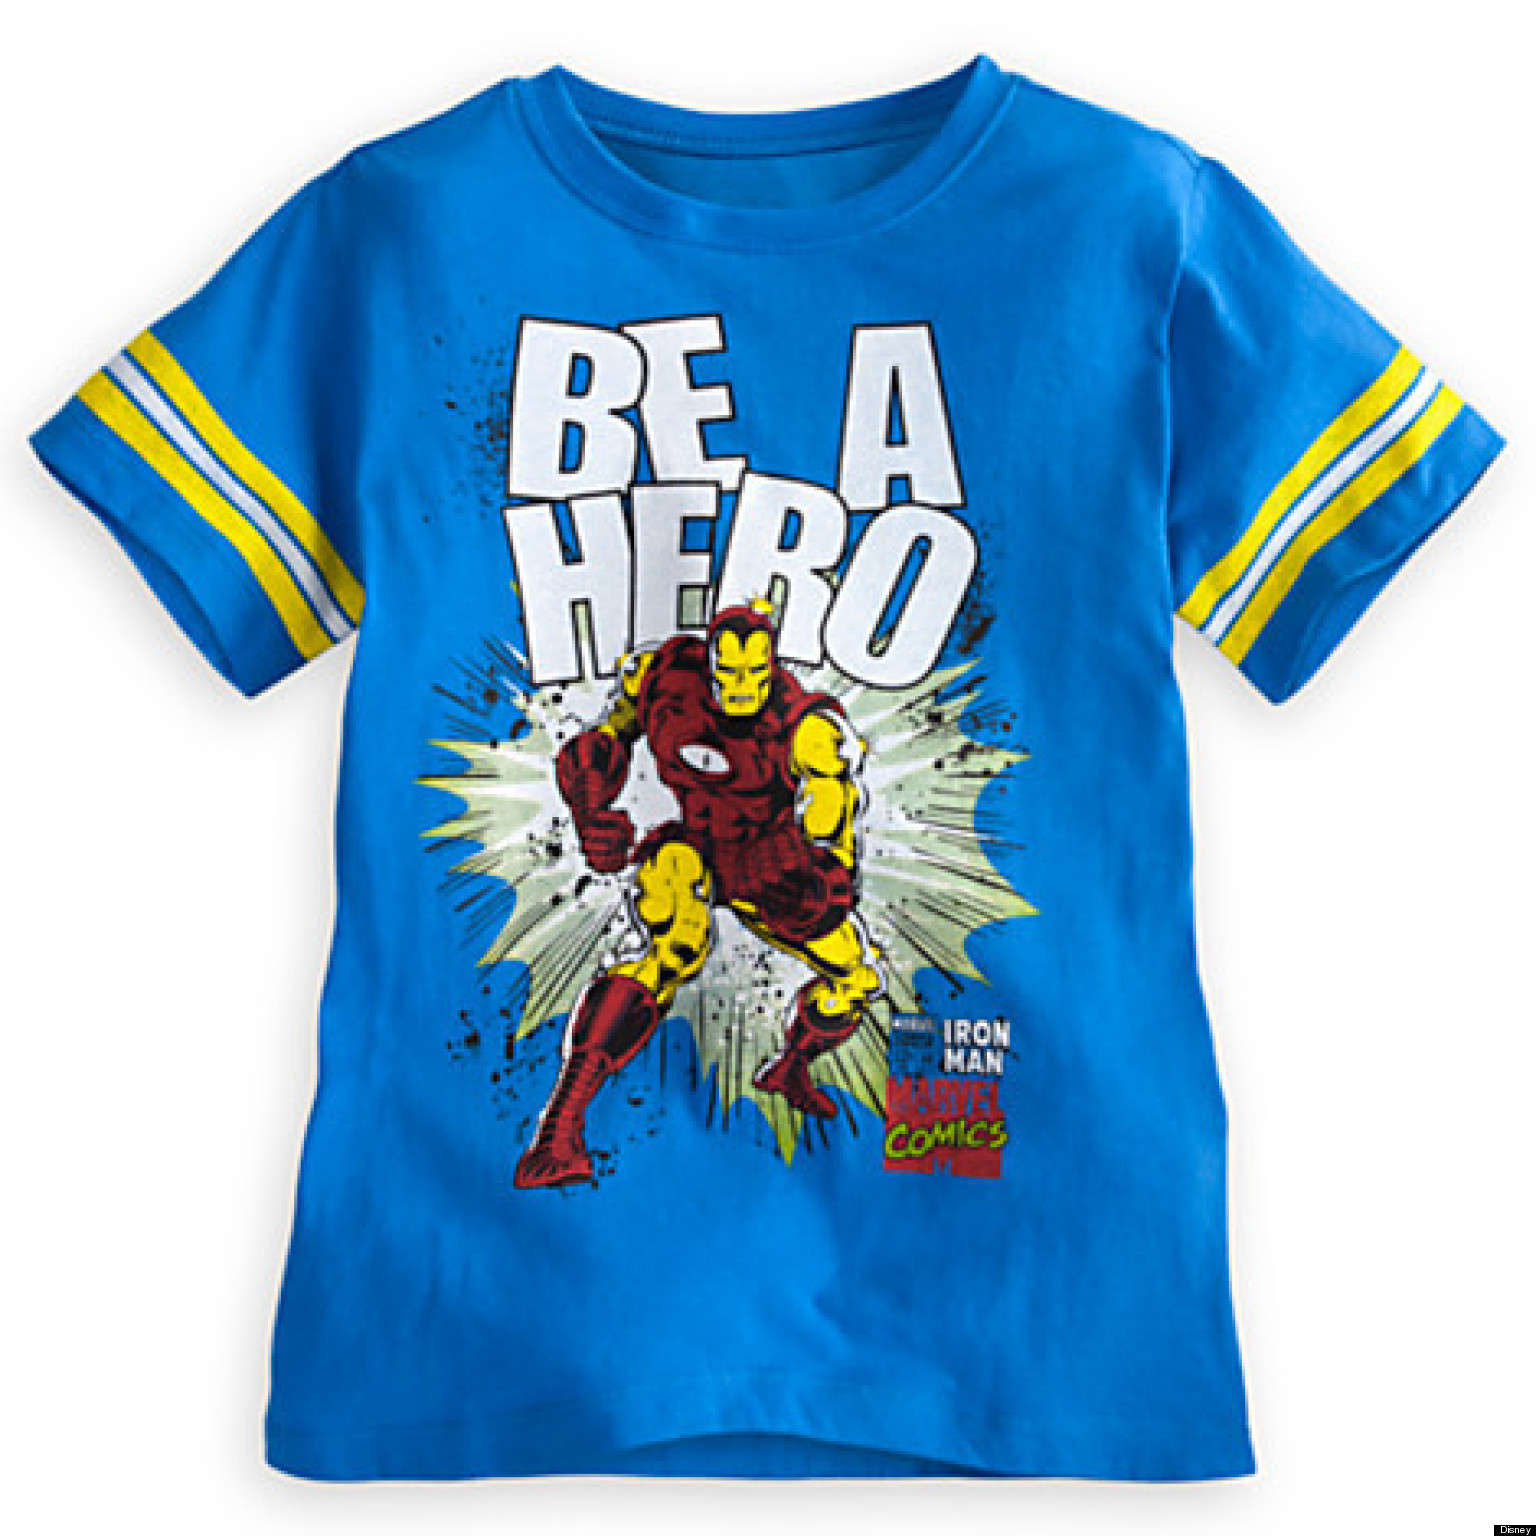 Comic Book Hero Baby Clothes